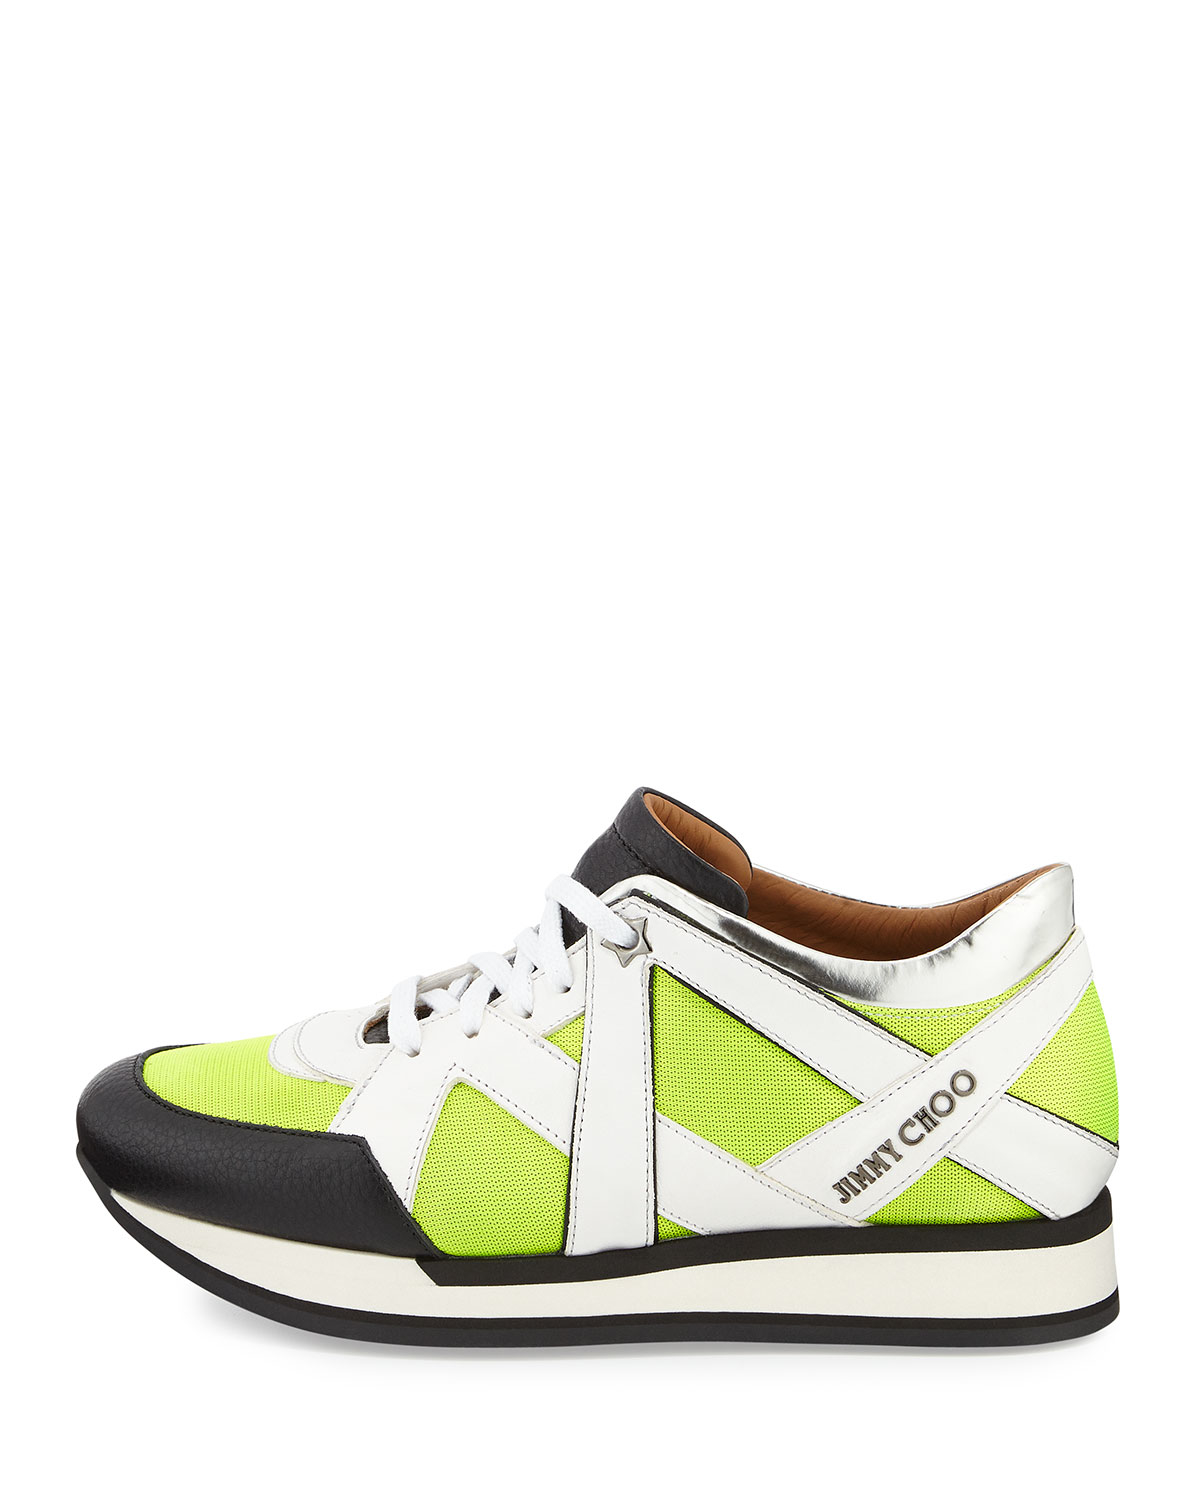 jimmy choo london lace up sneaker in yellow for men lyst. Black Bedroom Furniture Sets. Home Design Ideas